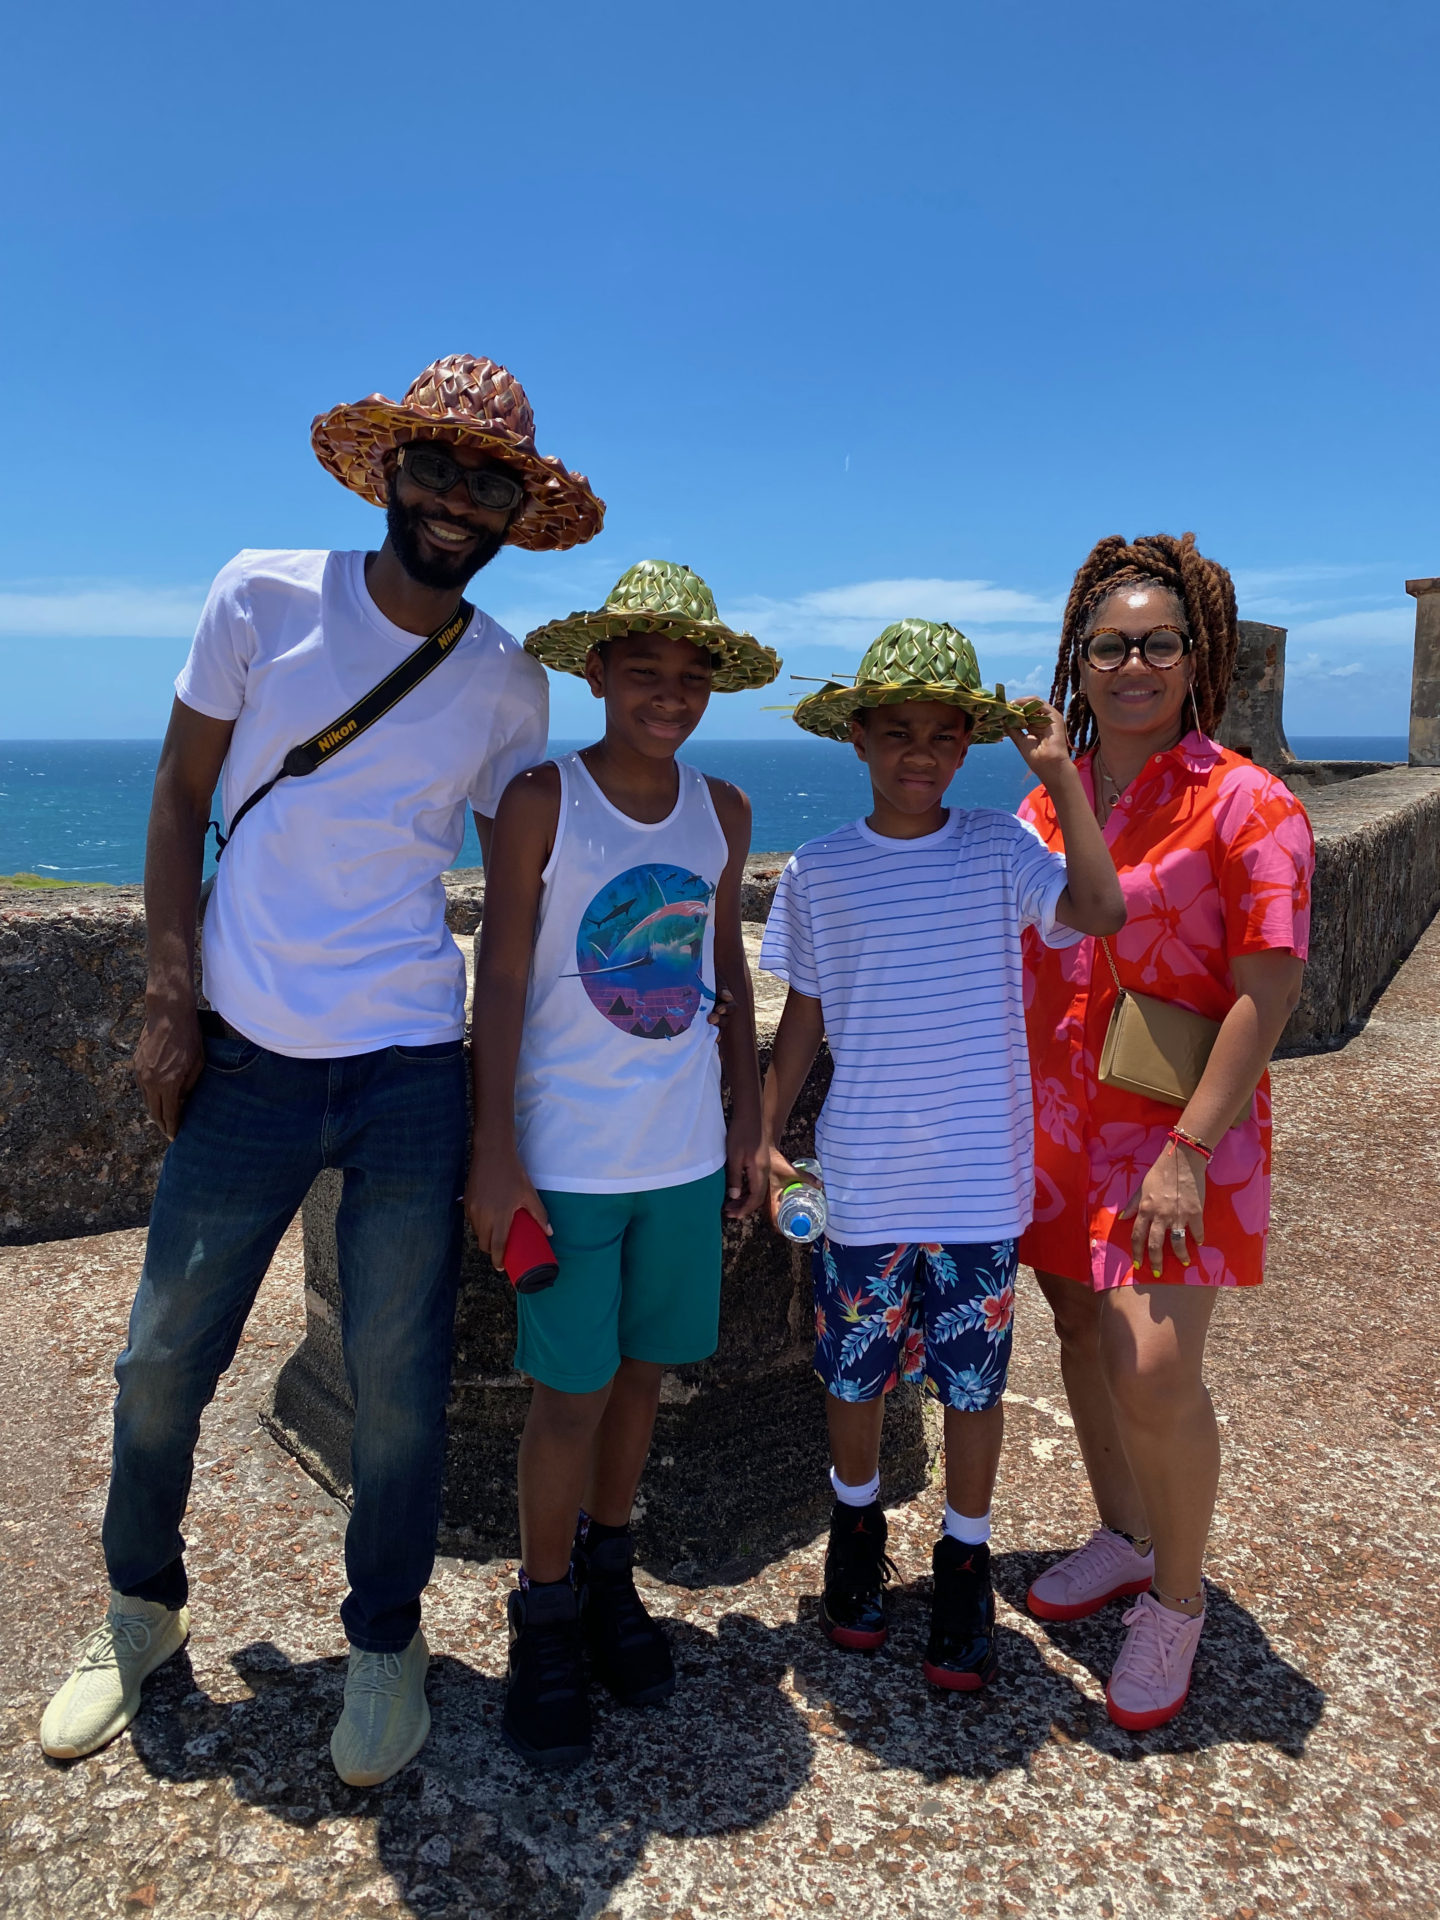 My Puerto Rico Travel Guide For Families